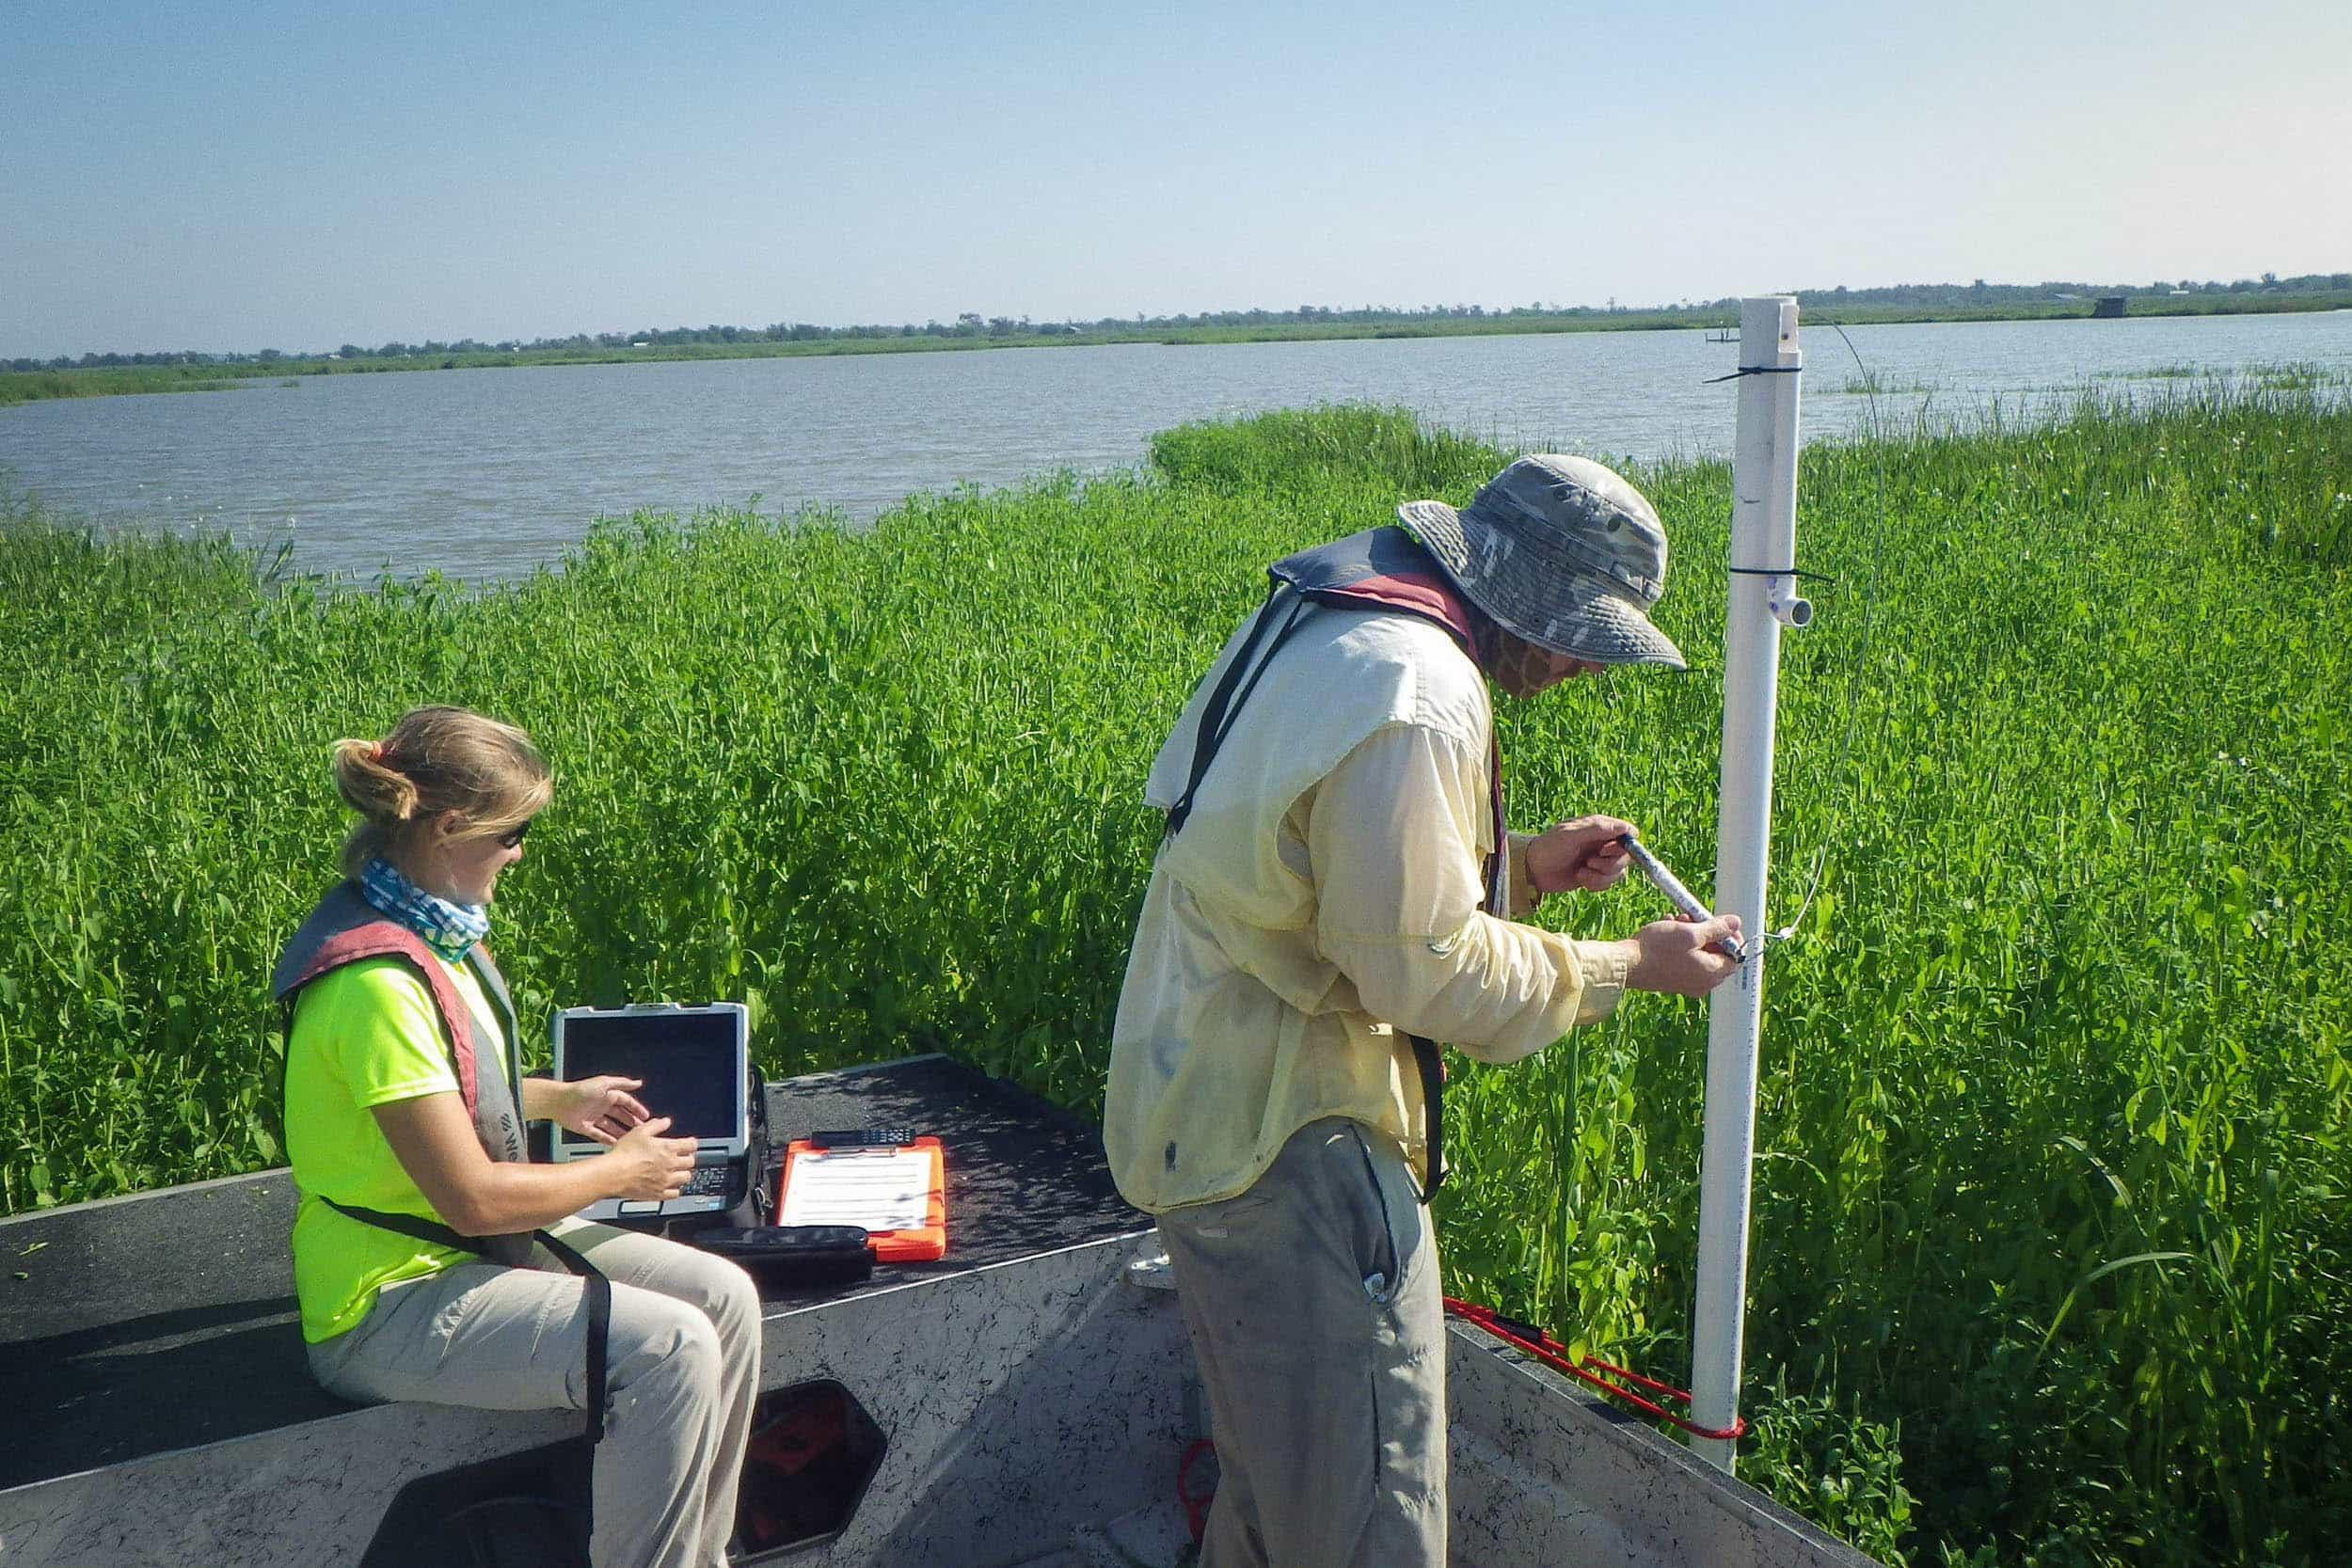 Anna Vallery and Tyler Swanson set up water quality monitoring equipment in the Trinity River